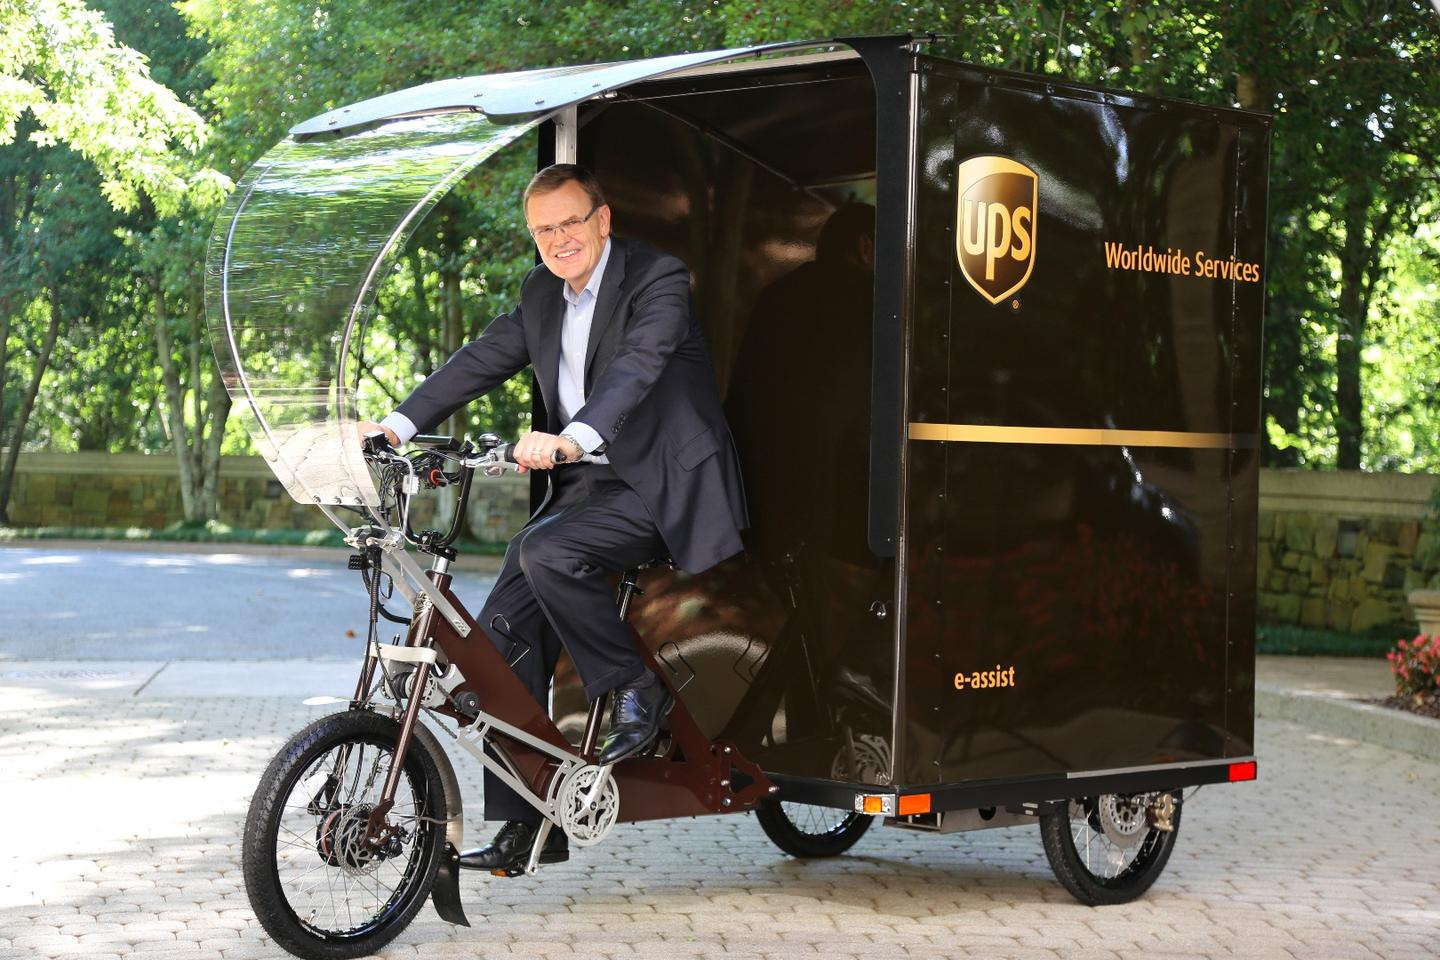 UPS Chairman and CEO David Abney on the Portland-based Cargo Cruiser